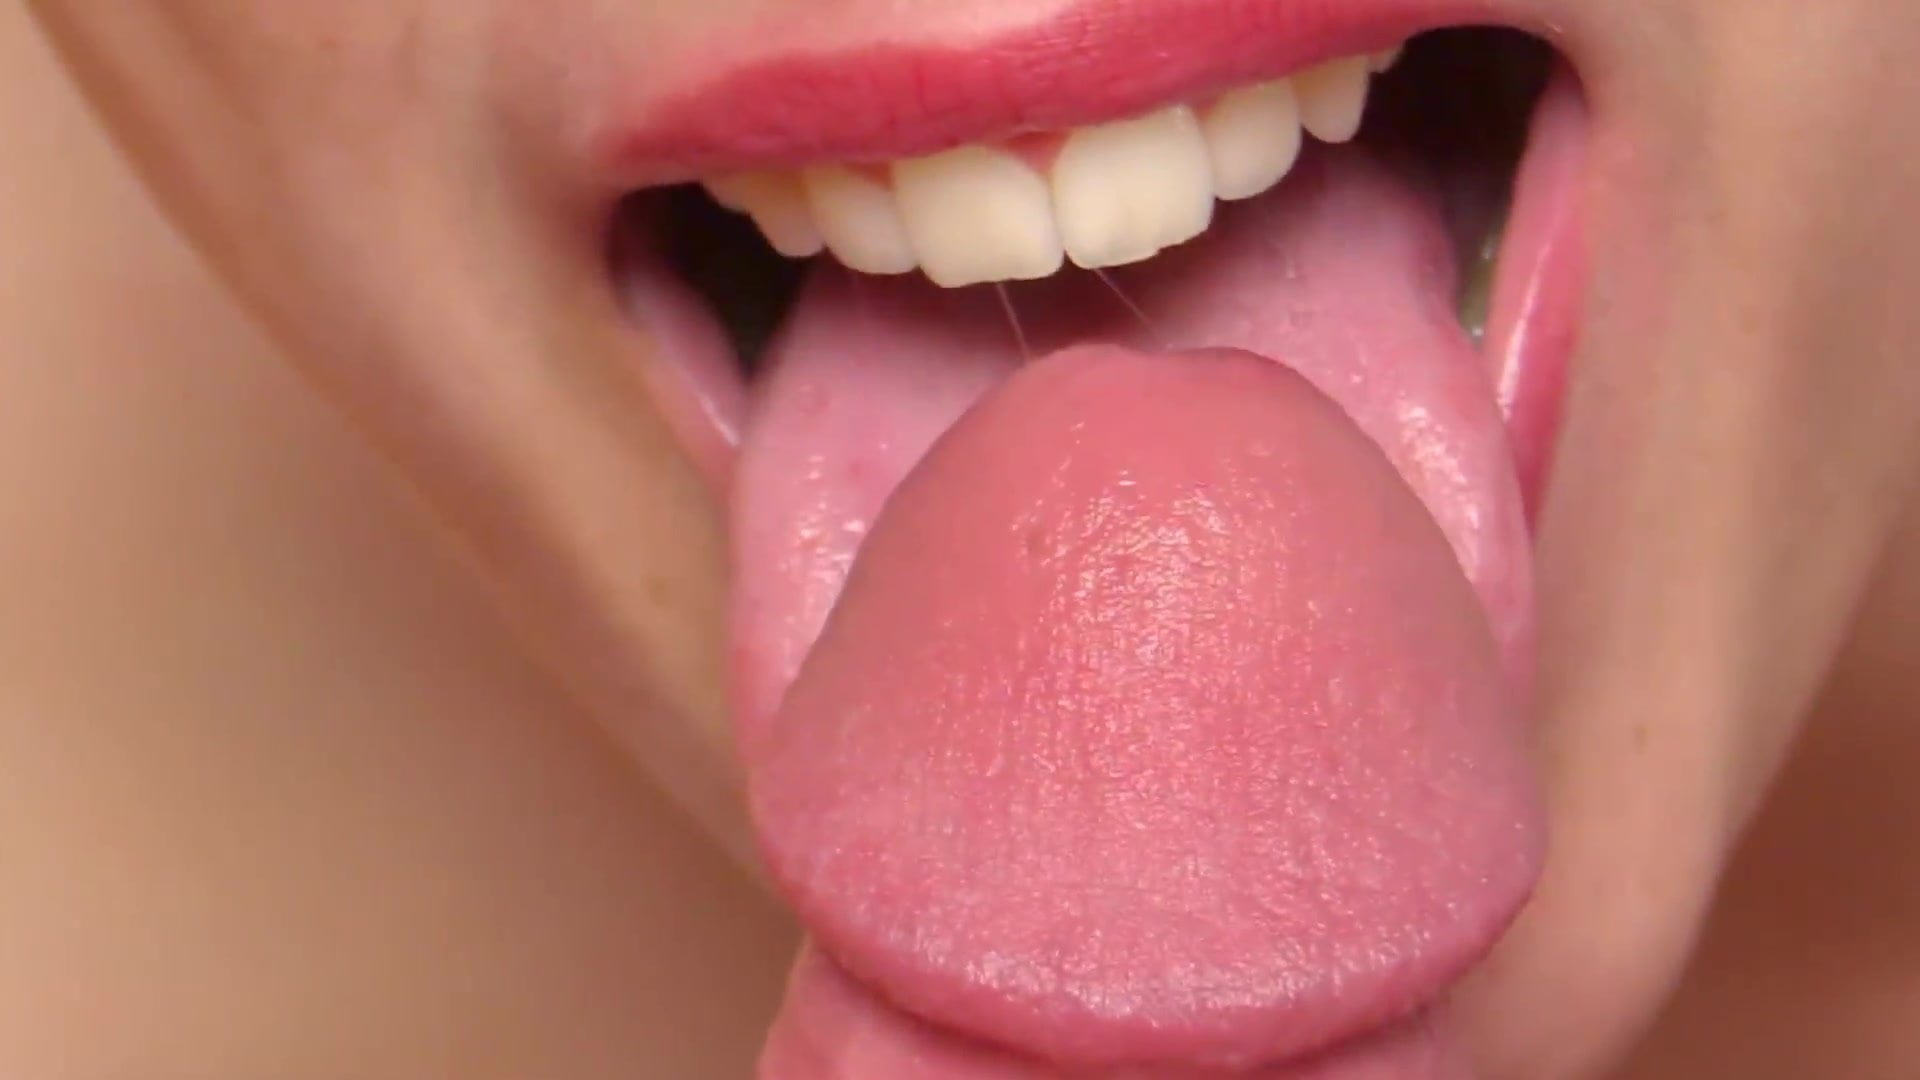 Blowjob Surprise Cum Mouth